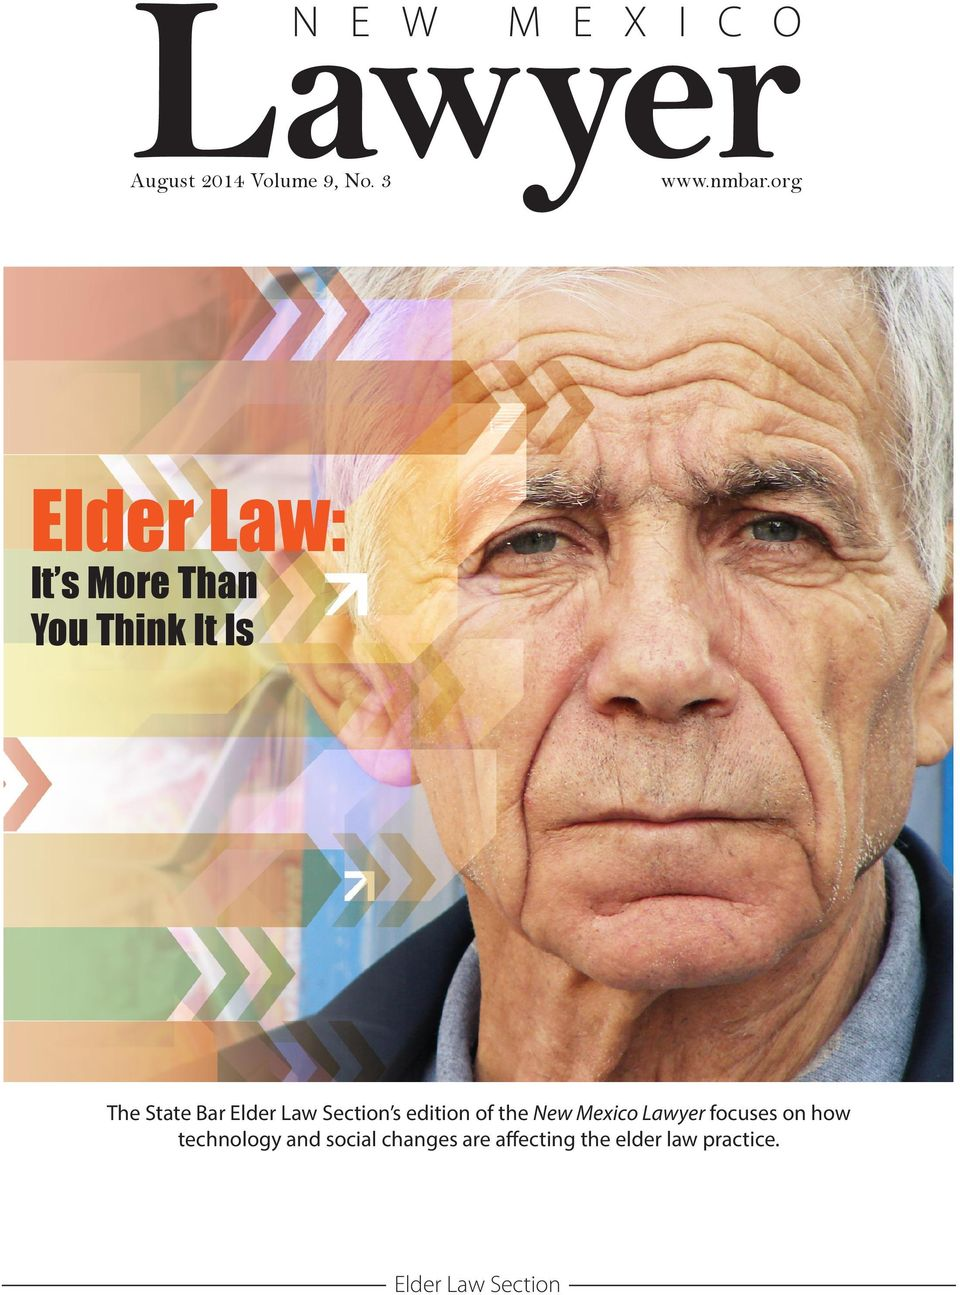 s edition of the New Mexico Lawyer focuses on how technology and social